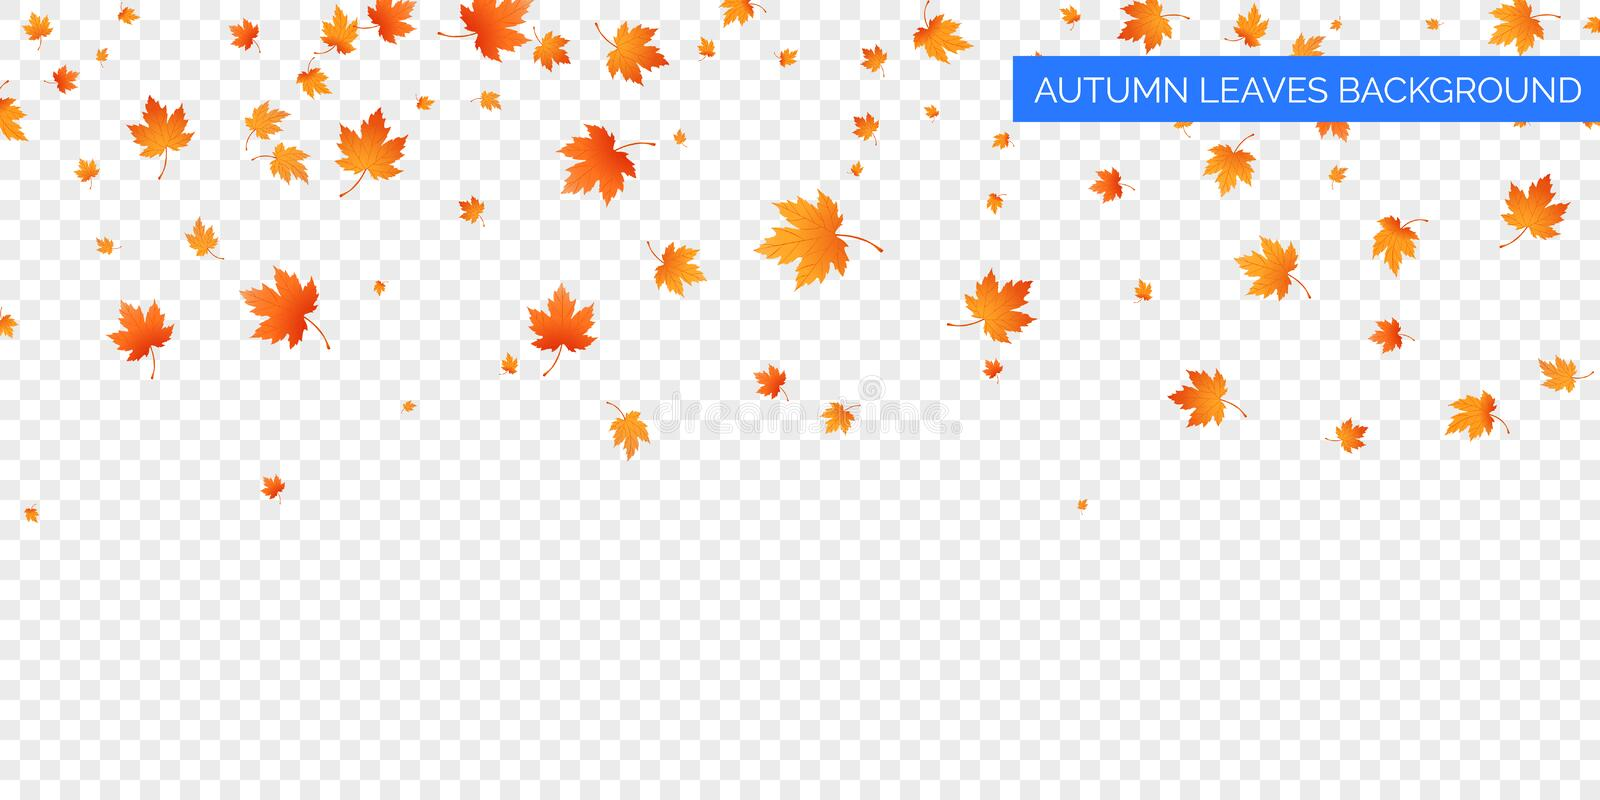 Autumn falling leaves on transparent background. Vector autumnal foliage fall of maple leaves. Autumn background design vector illustration